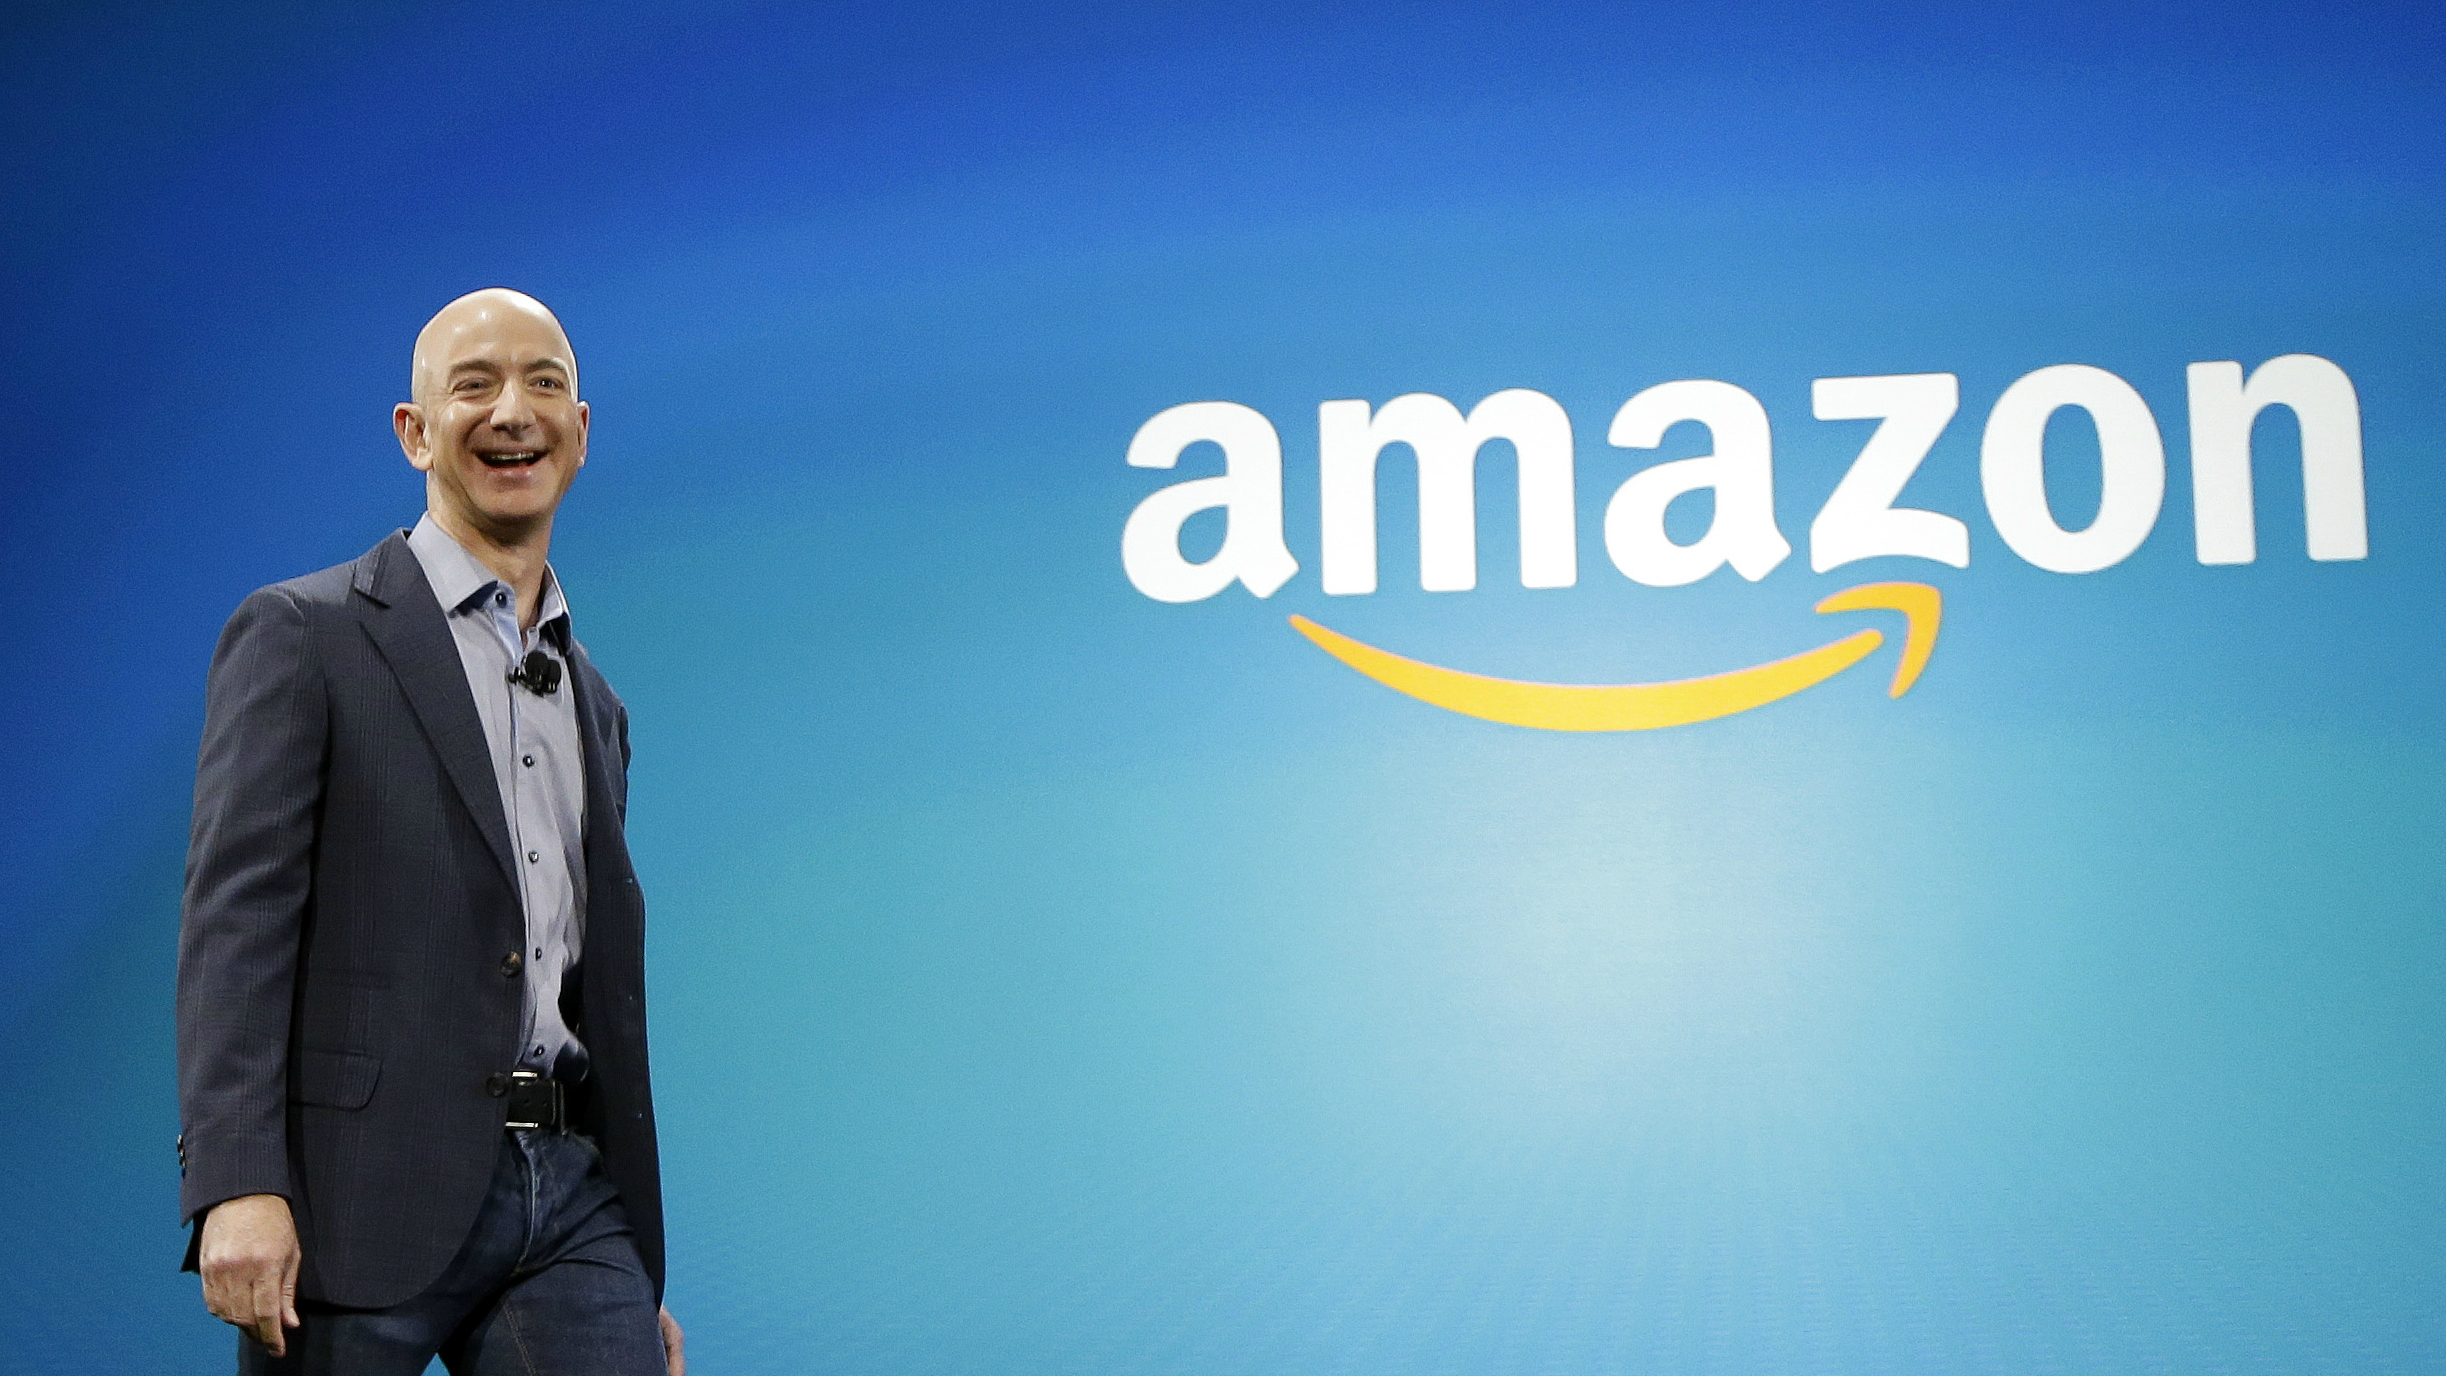 Jeff Bezos in front of an Amazon sign.